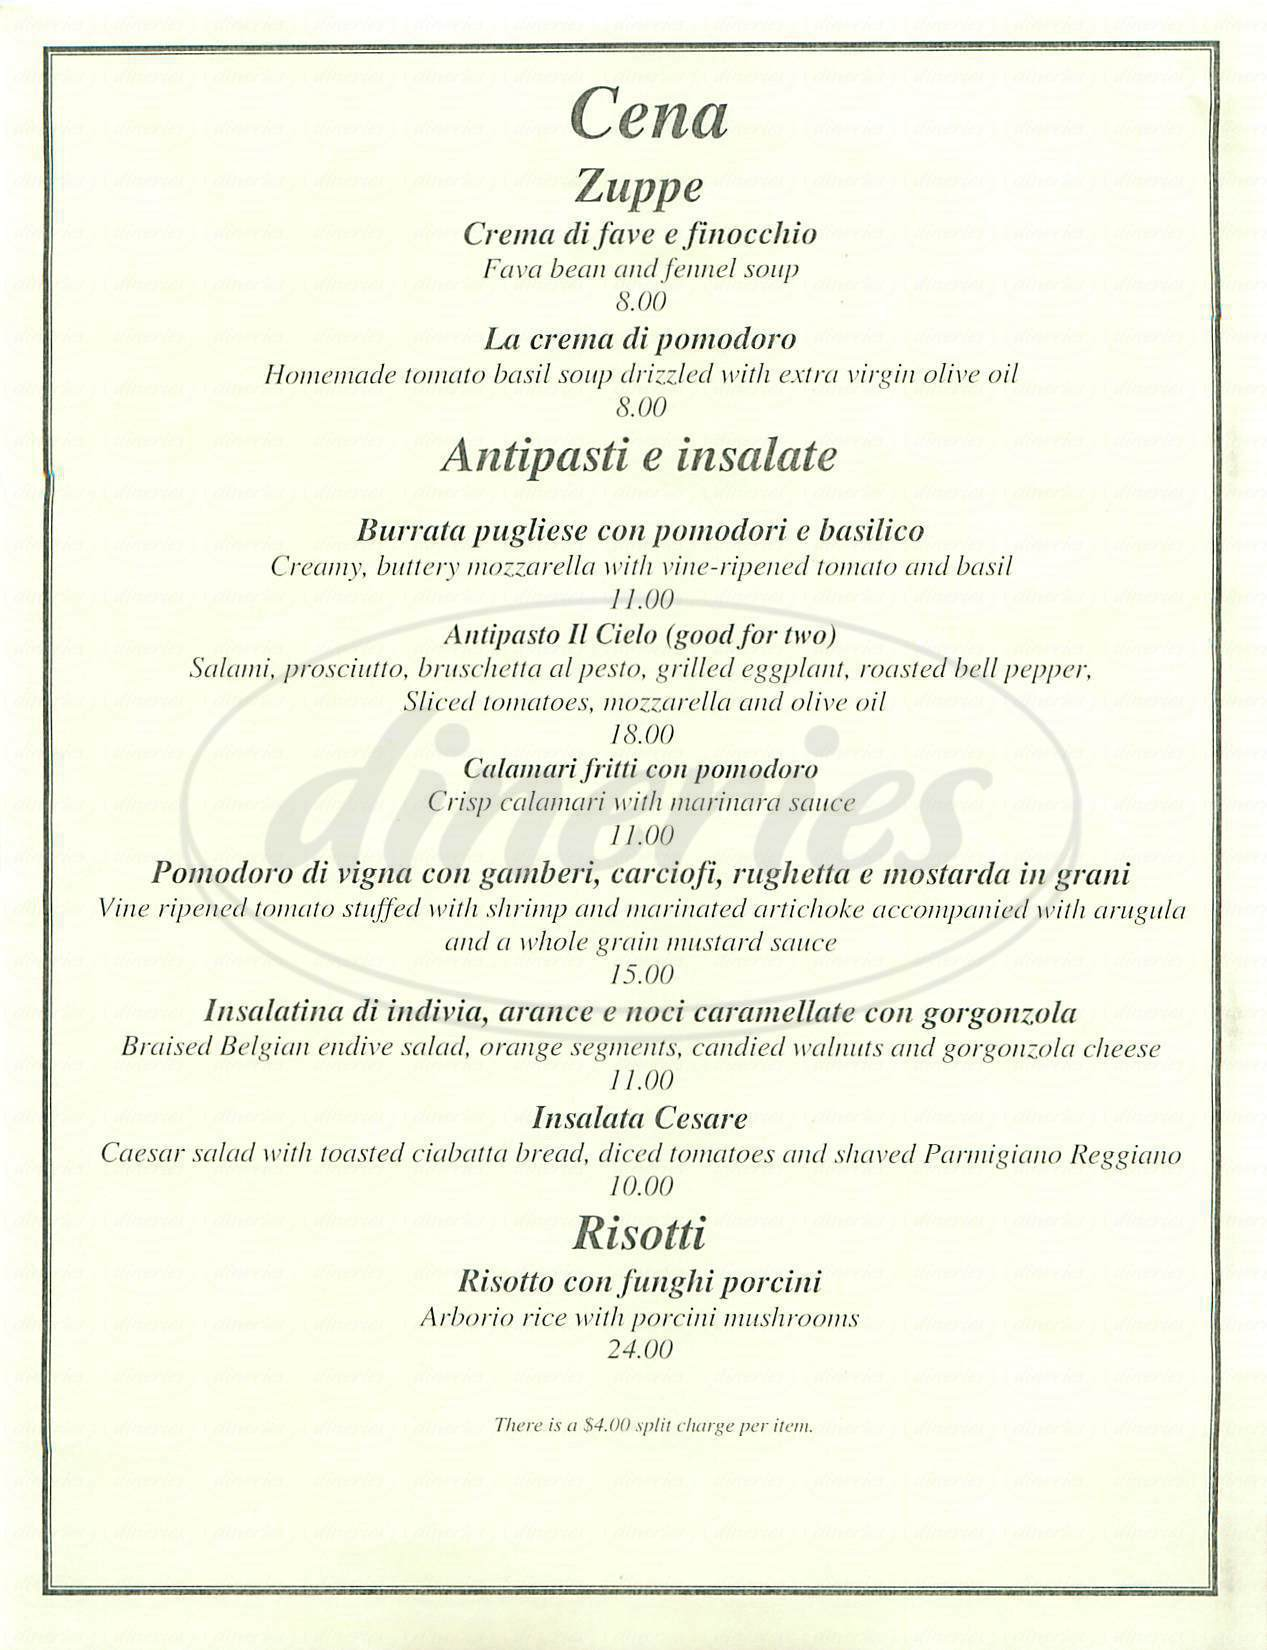 menu for Il Cielo